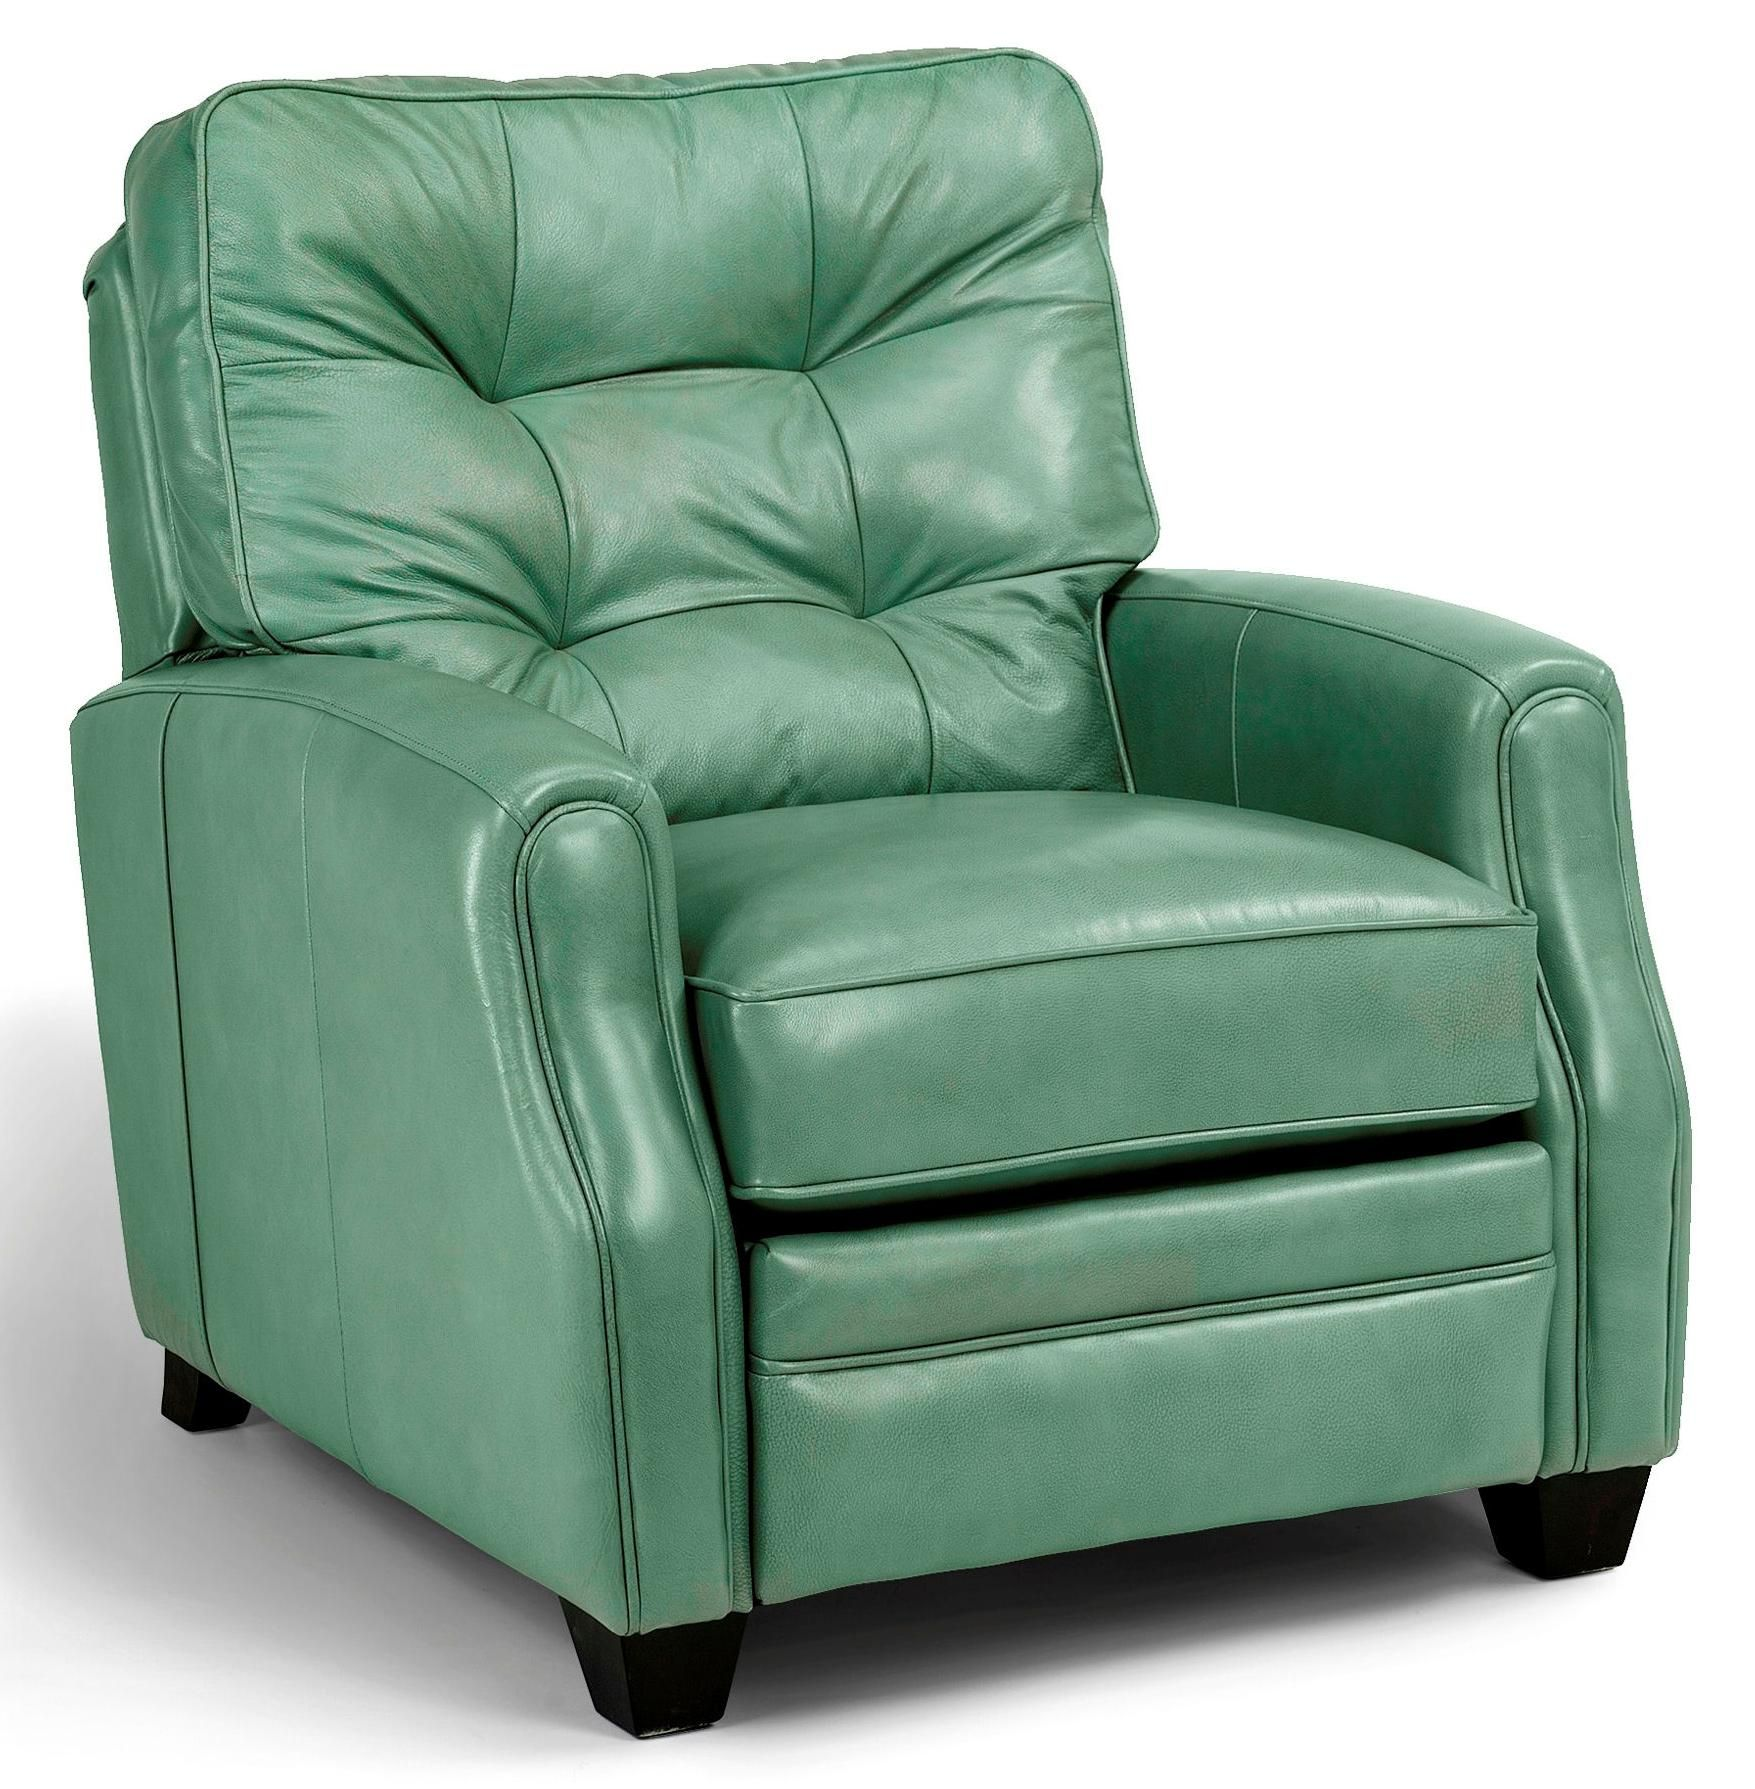 Representation of High End Recliners Offering Both Comfort and